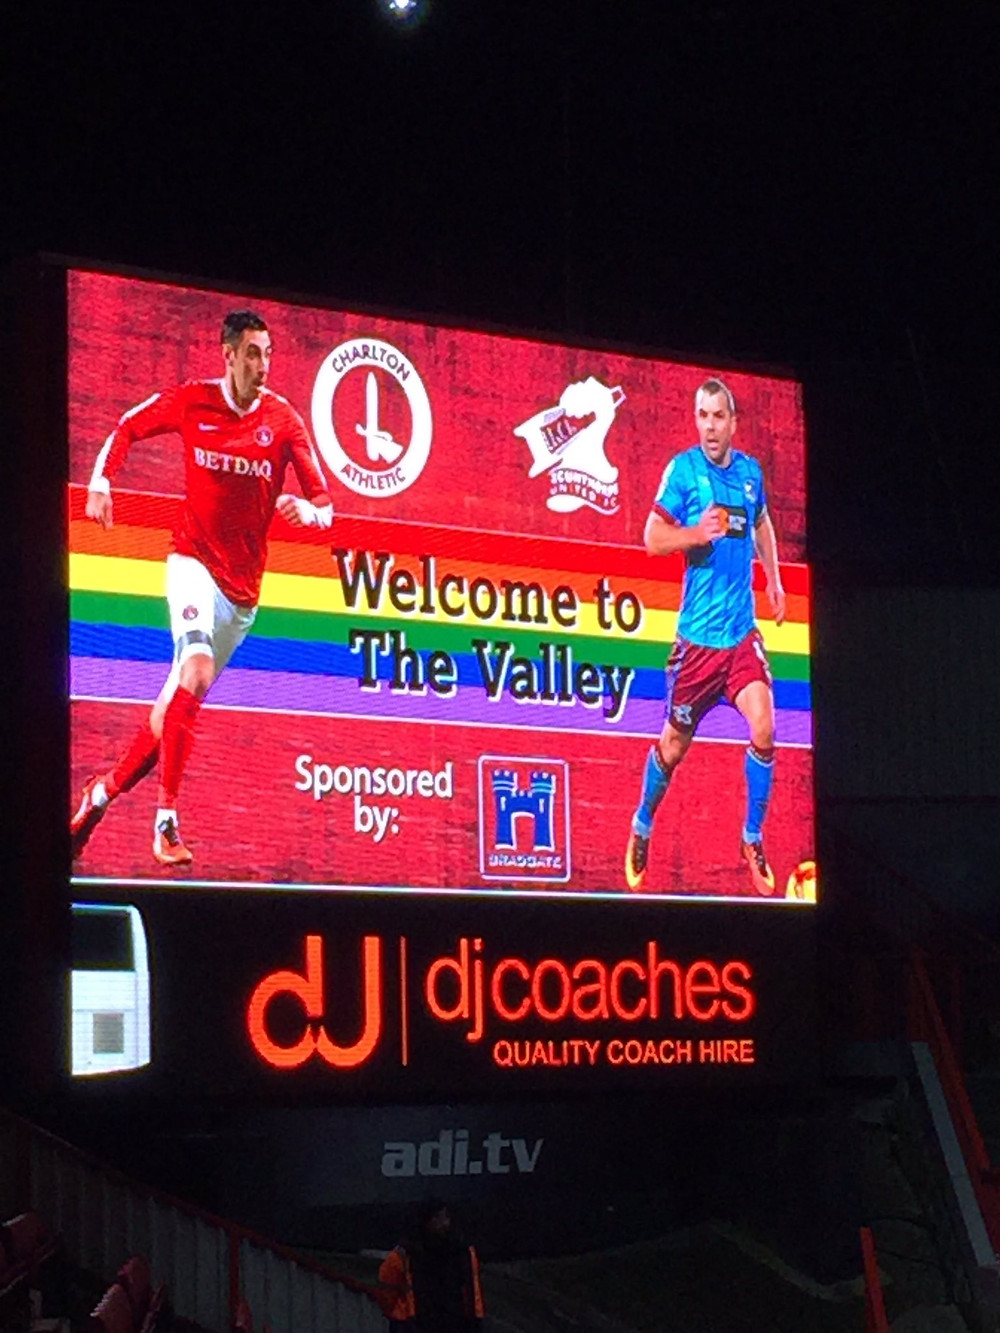 The CAFC Big Screen during the match.